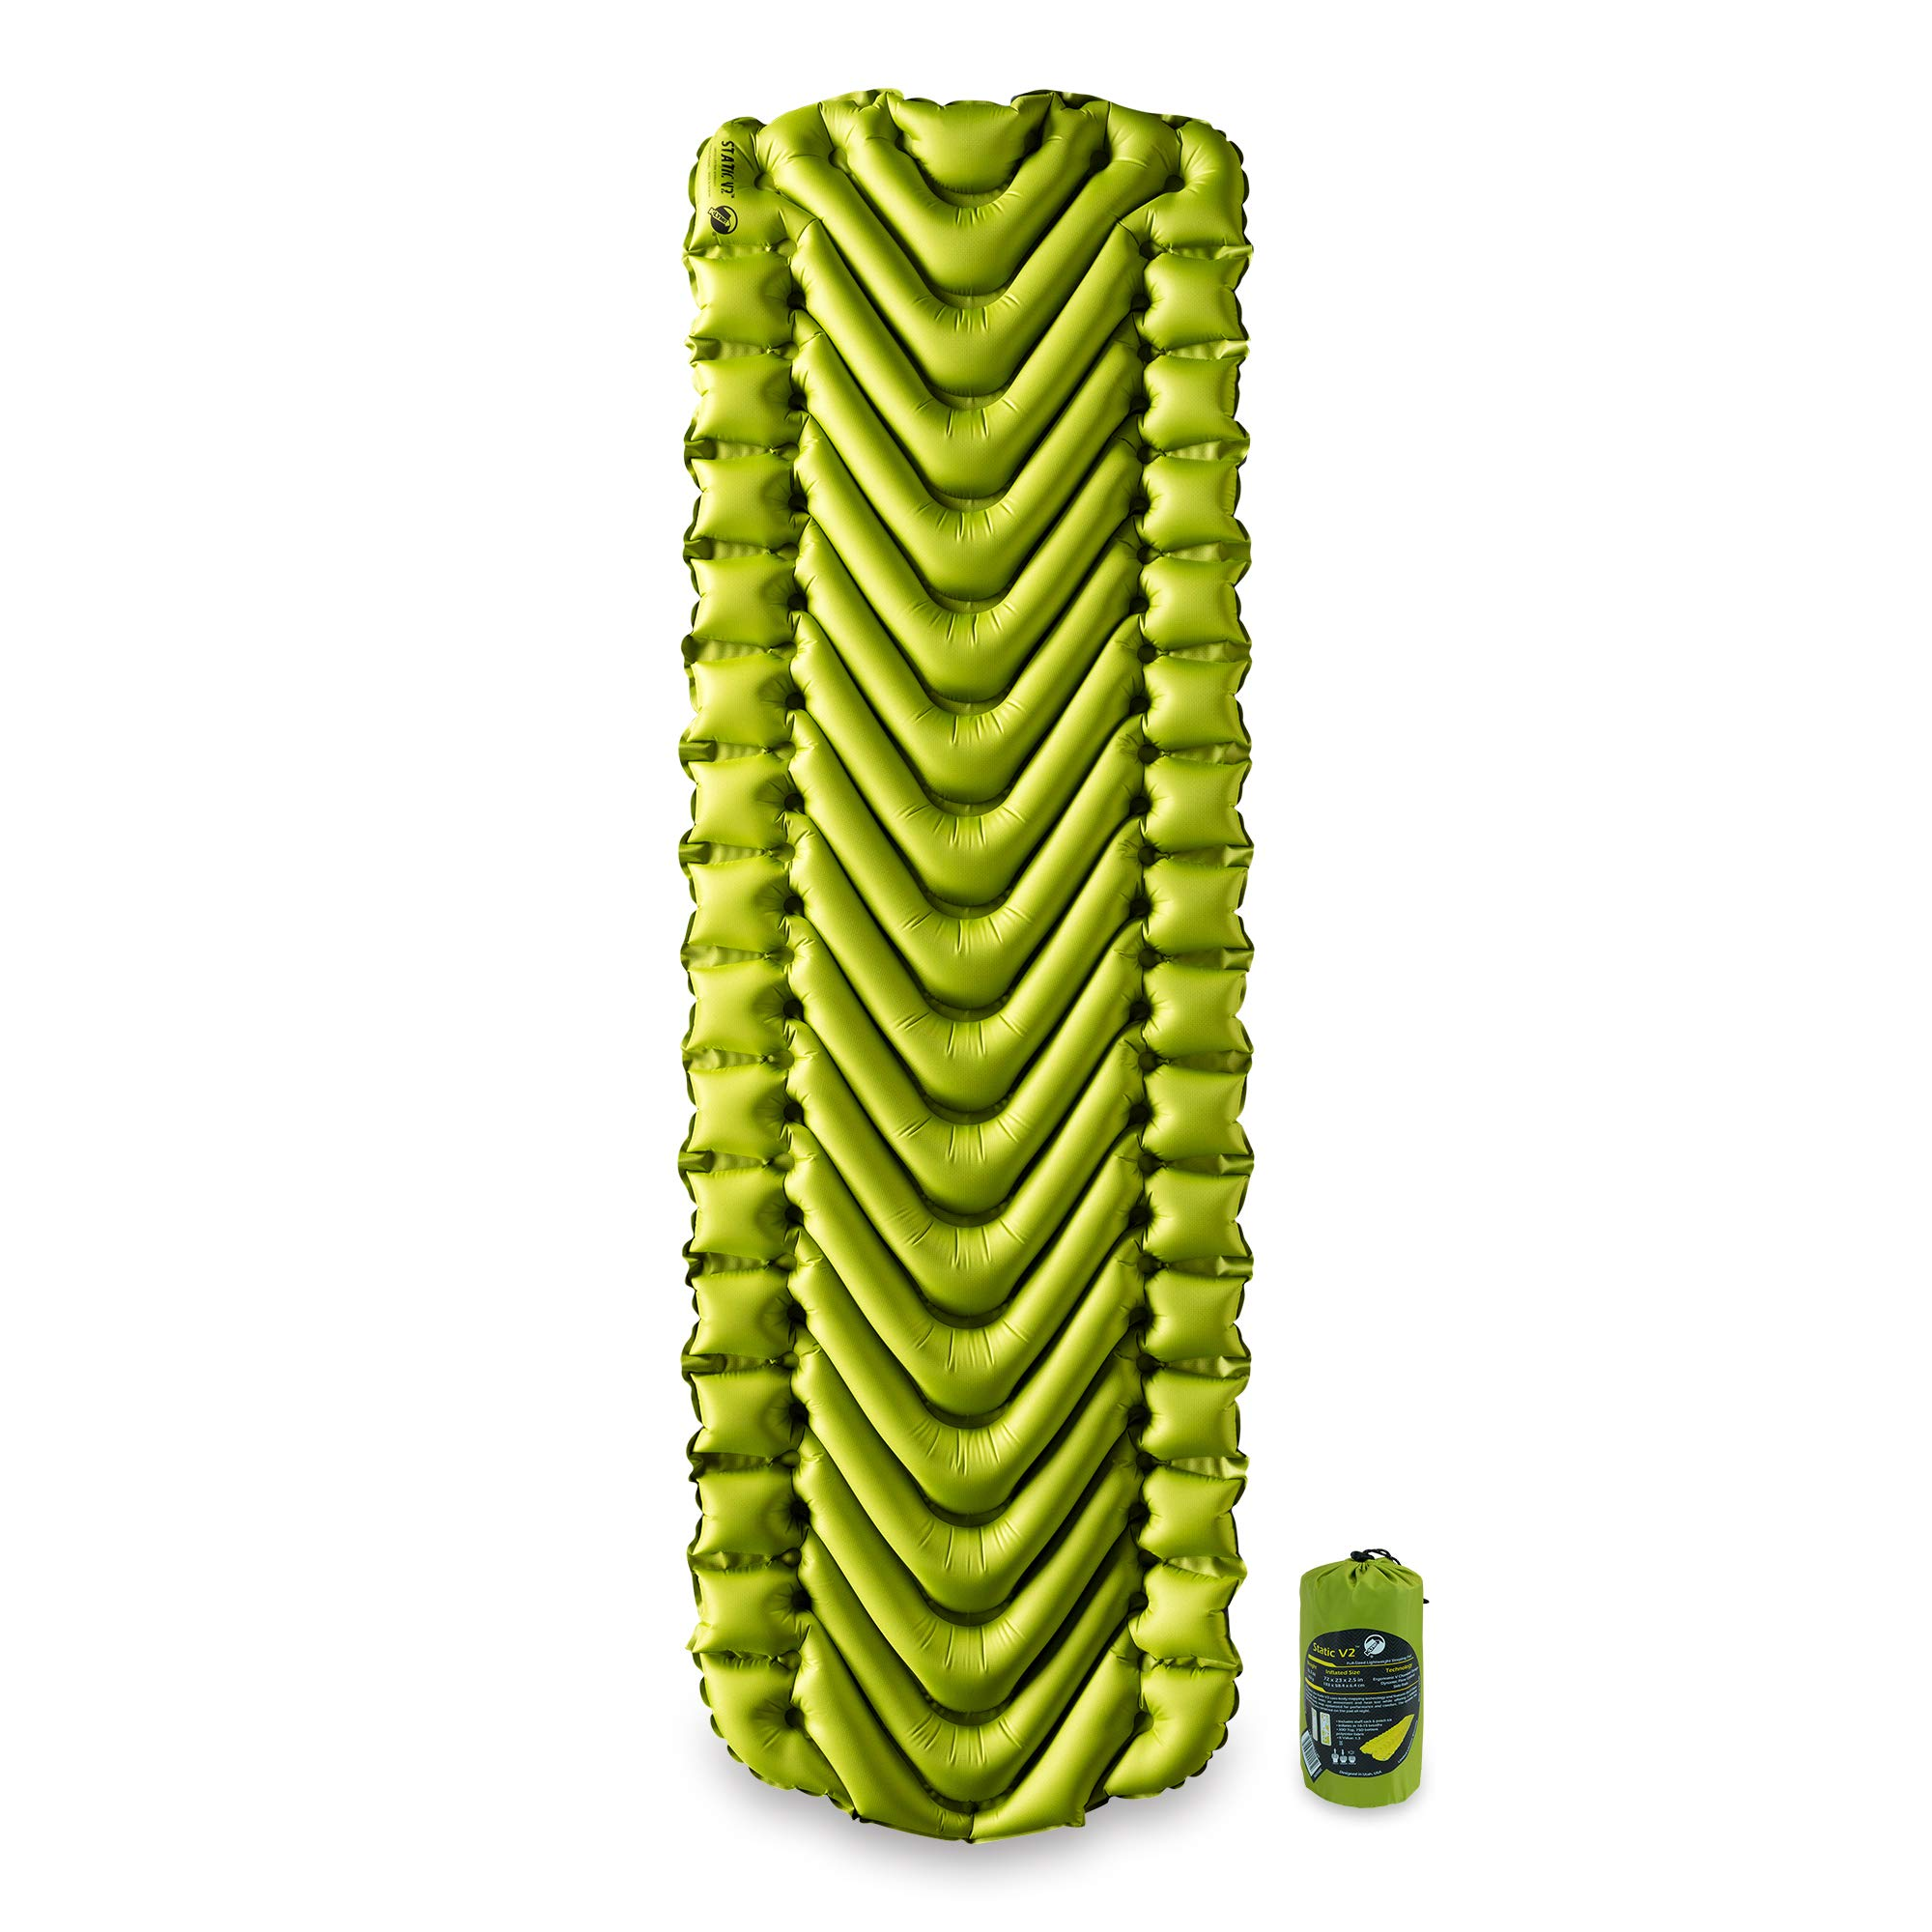 Klymit Static V2 Sleeping Pad, Ultralight, (12% Lighter), Great for Camping, Hiking, Travel and Backpacking by Klymit